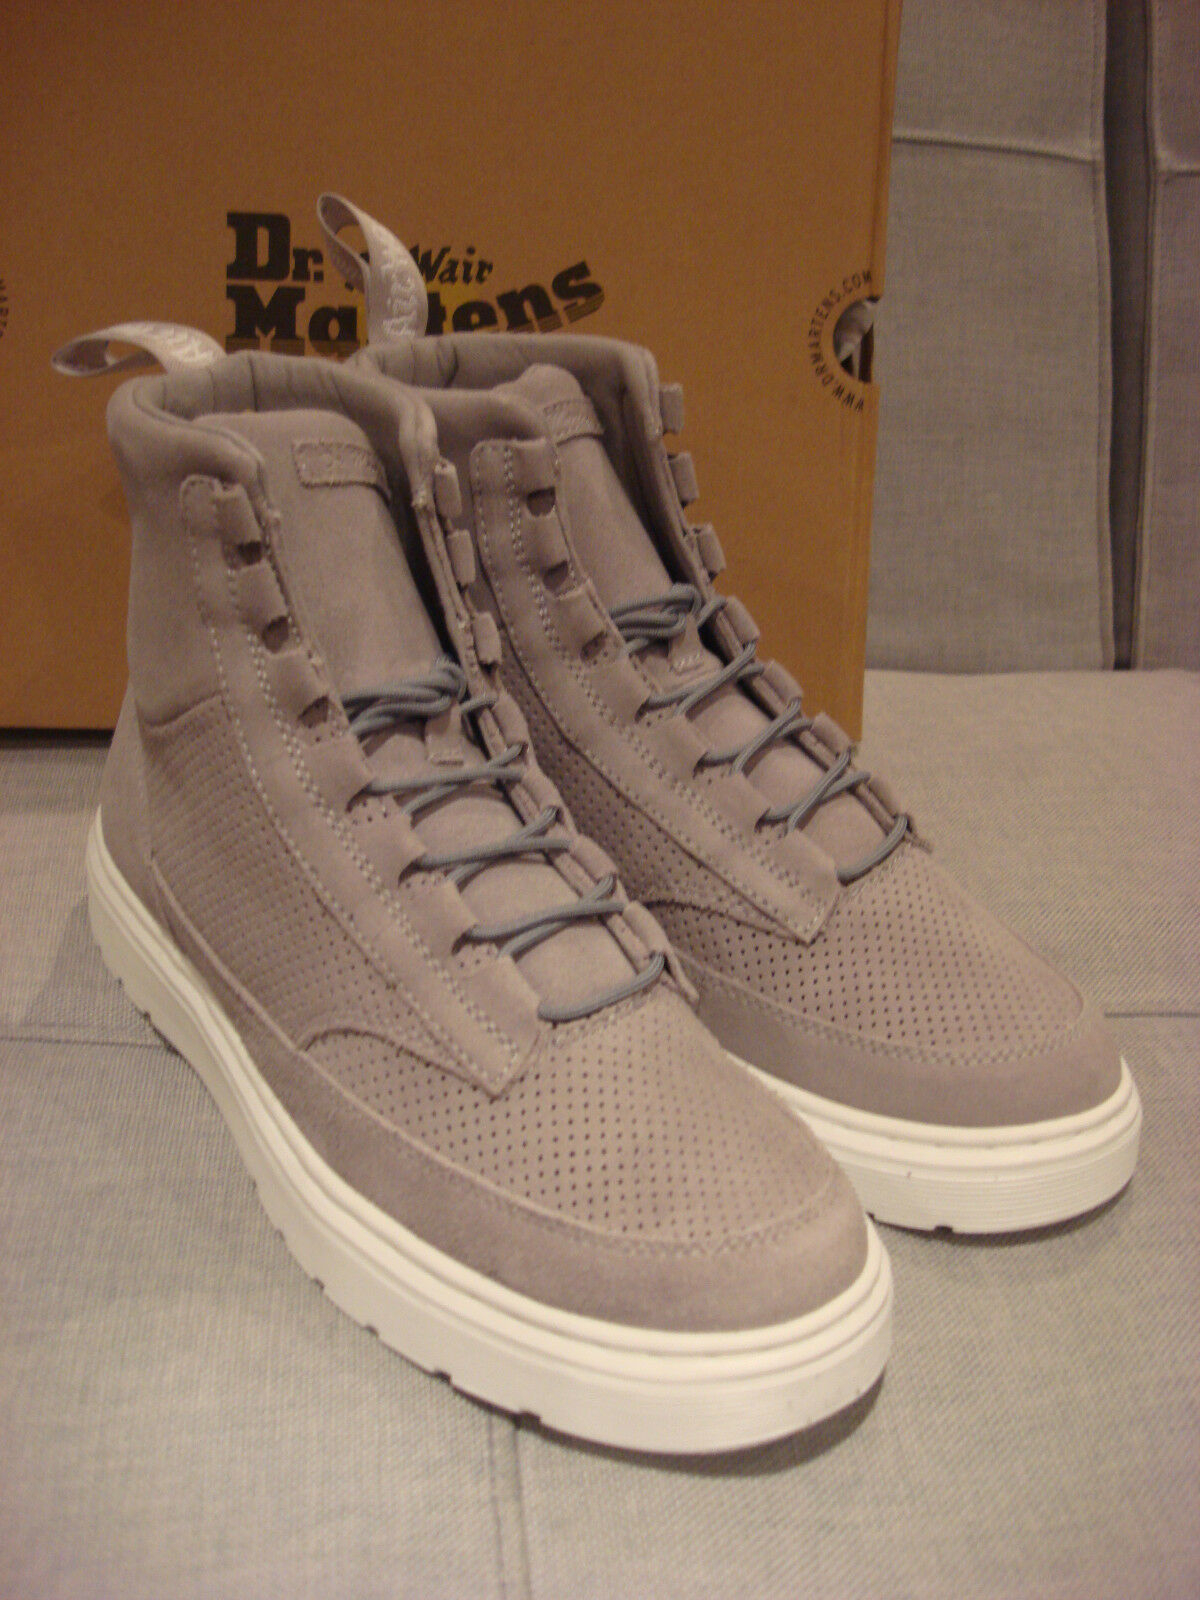 DR. MARTENS MEN'S KAMAR MID GREY 22104053 SHOES BOOTS SIZE 11 - BRAND NEW